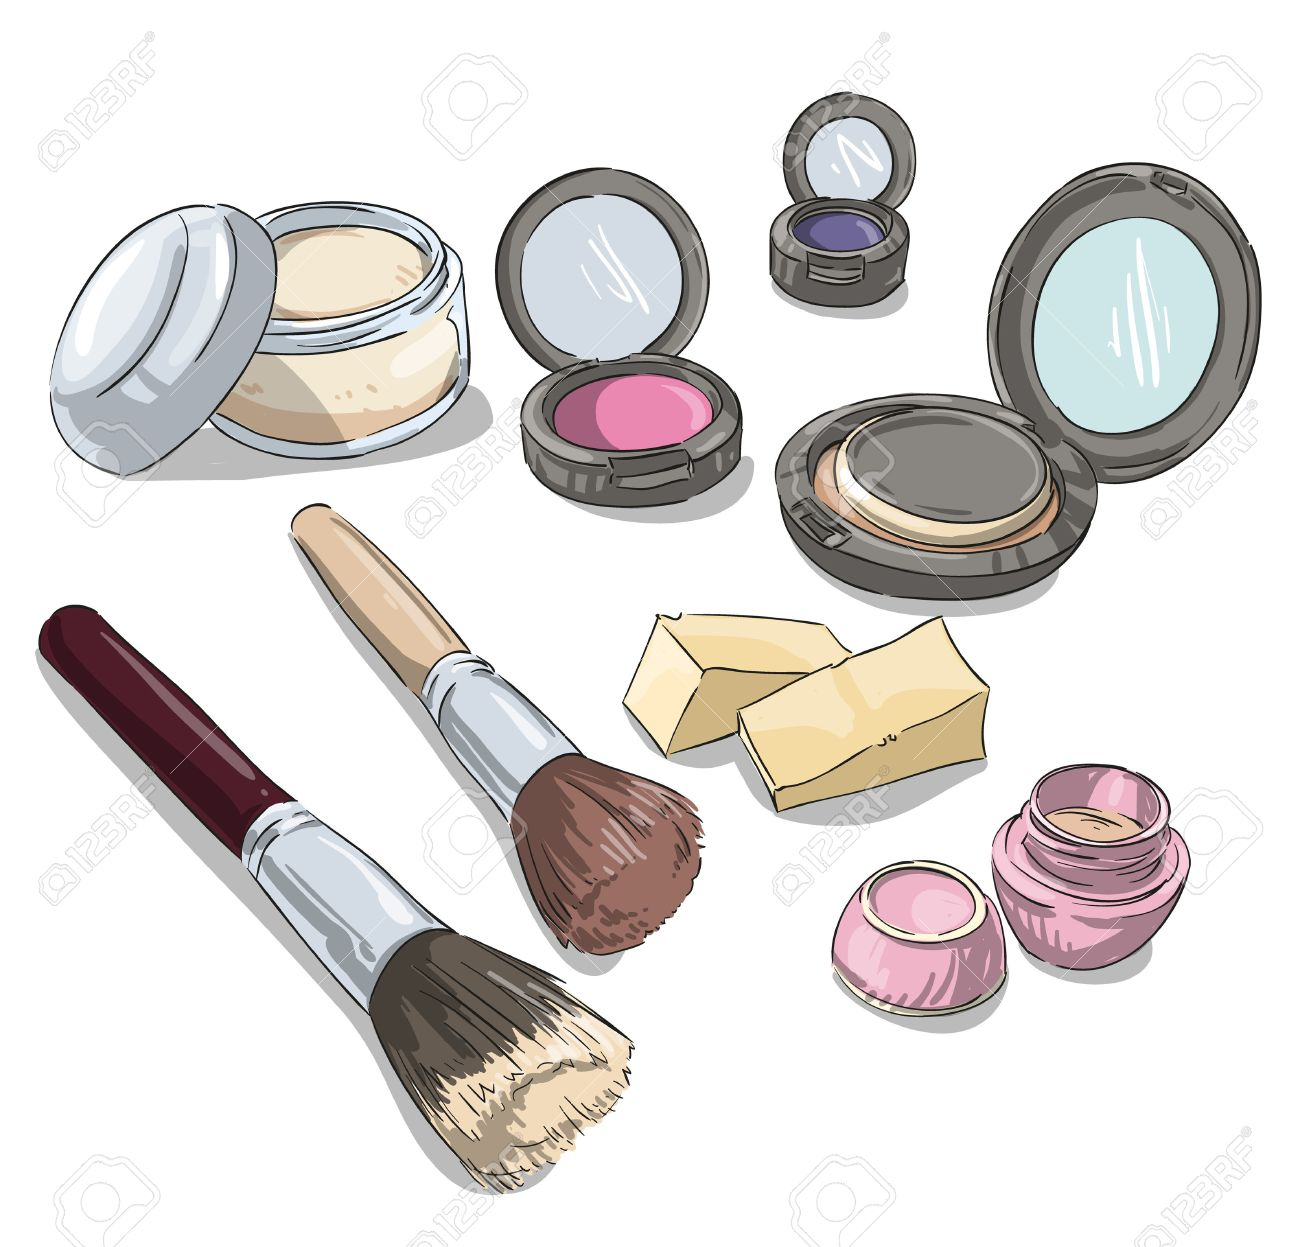 1300x1247 Makeup Products Drawing. Fashion Illustration. Royalty Free